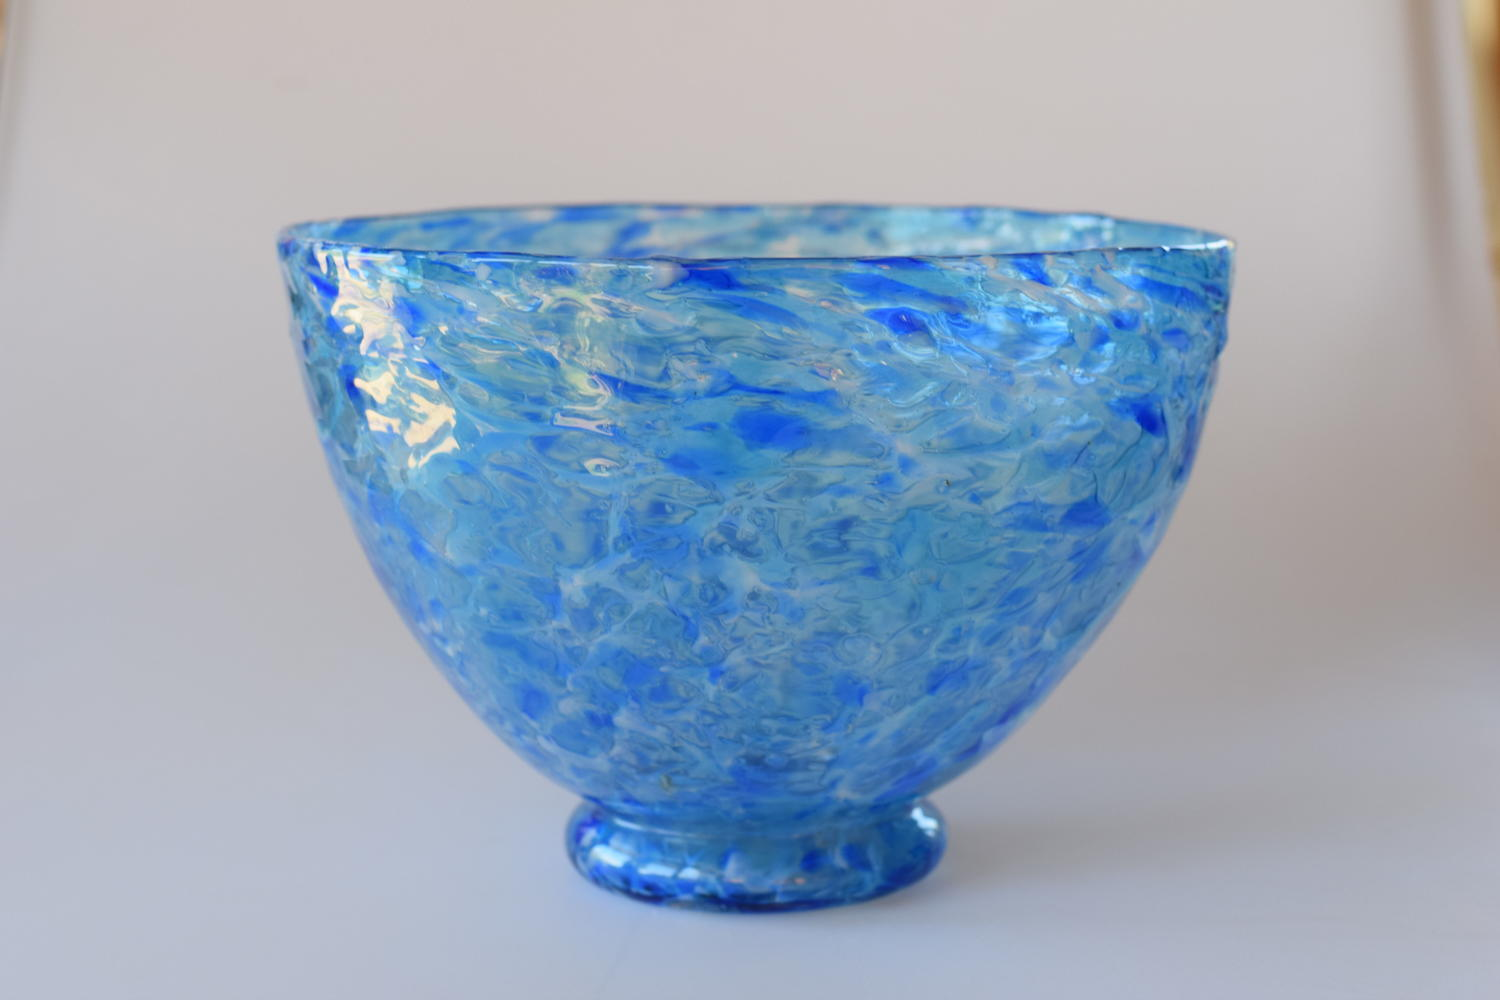 Cloudy/streaky blue bowl, William Butler.